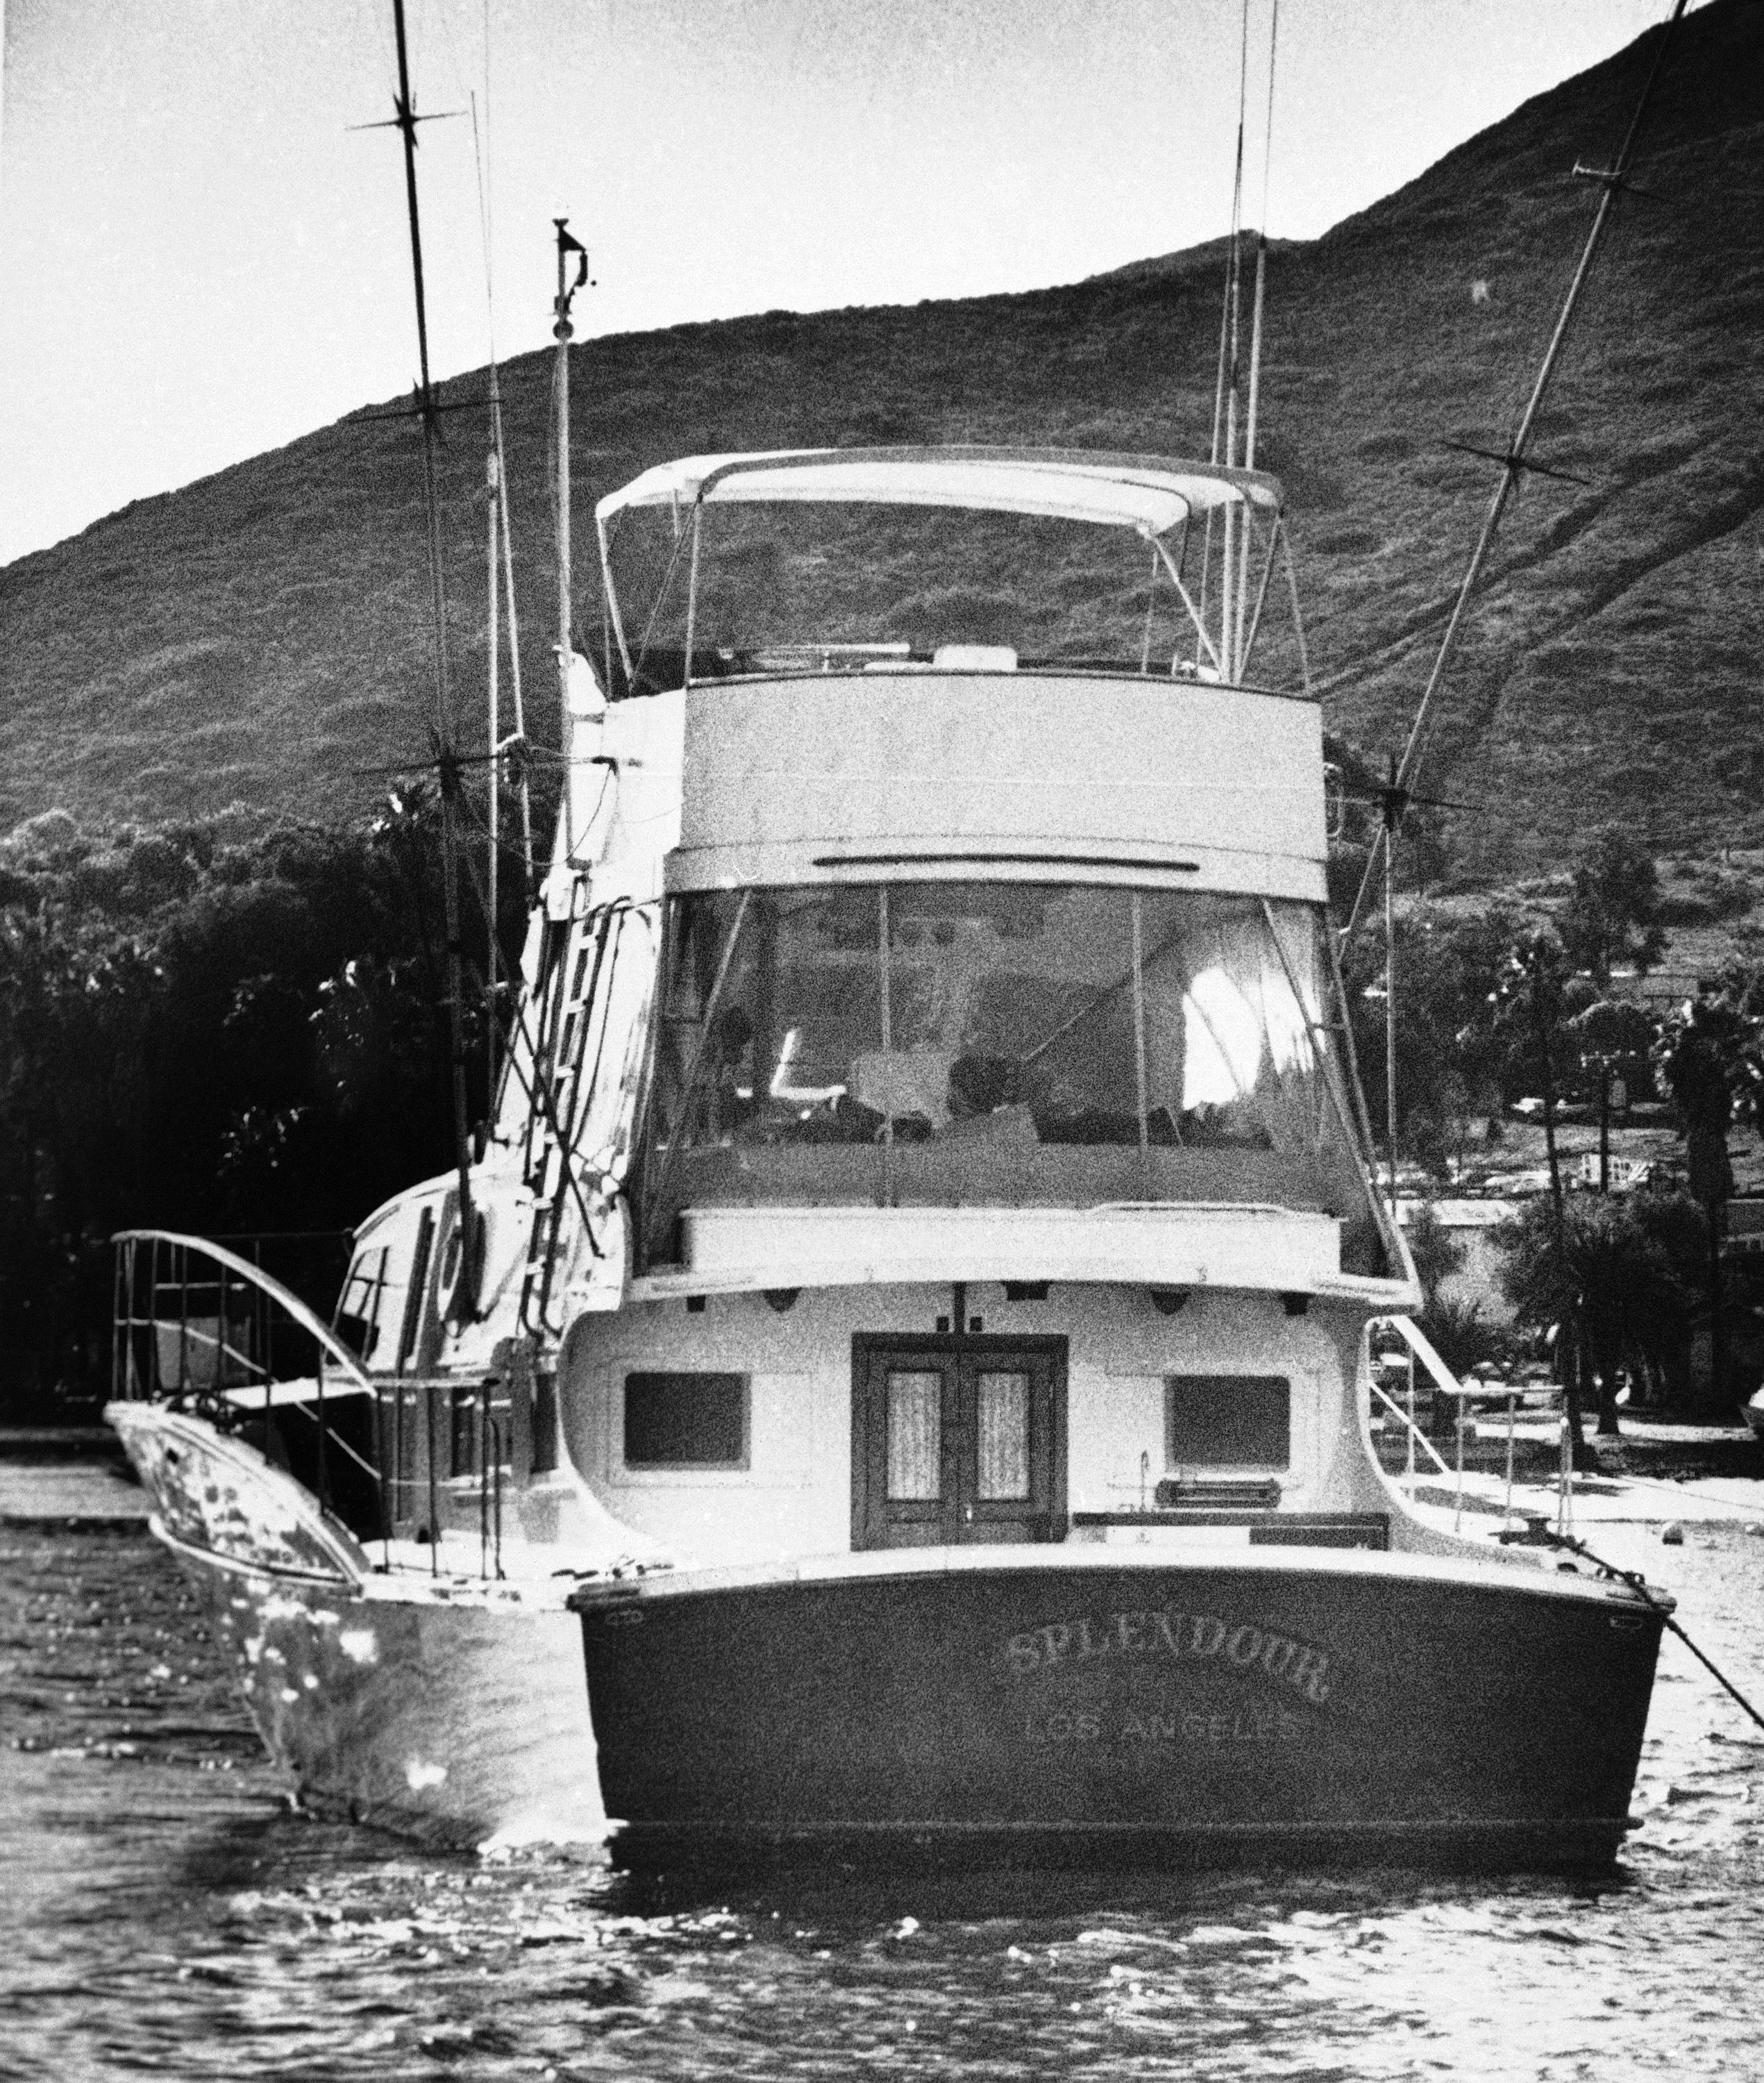 "FILE - This Nov. 29, 1981 file photo, the 55-foot yacht ""Splendour,"" belonging to actor Robert Wagner and his wife, actress Natalie Wood, sits in the waters at Avalon, Calif., on Santa Catalina Island, near where rescuers found the body of Wood, an apparent drowning victim. Investigators are now calling Wagner a ""person of interest"" in the 1981 death of Wood. Mystery has swirled around Wood's death. It was declared an accident but police reopened the case in 2011 to see whether Wagner or anyone else played a role (AP Photo/Paul J. Harrington, File)"